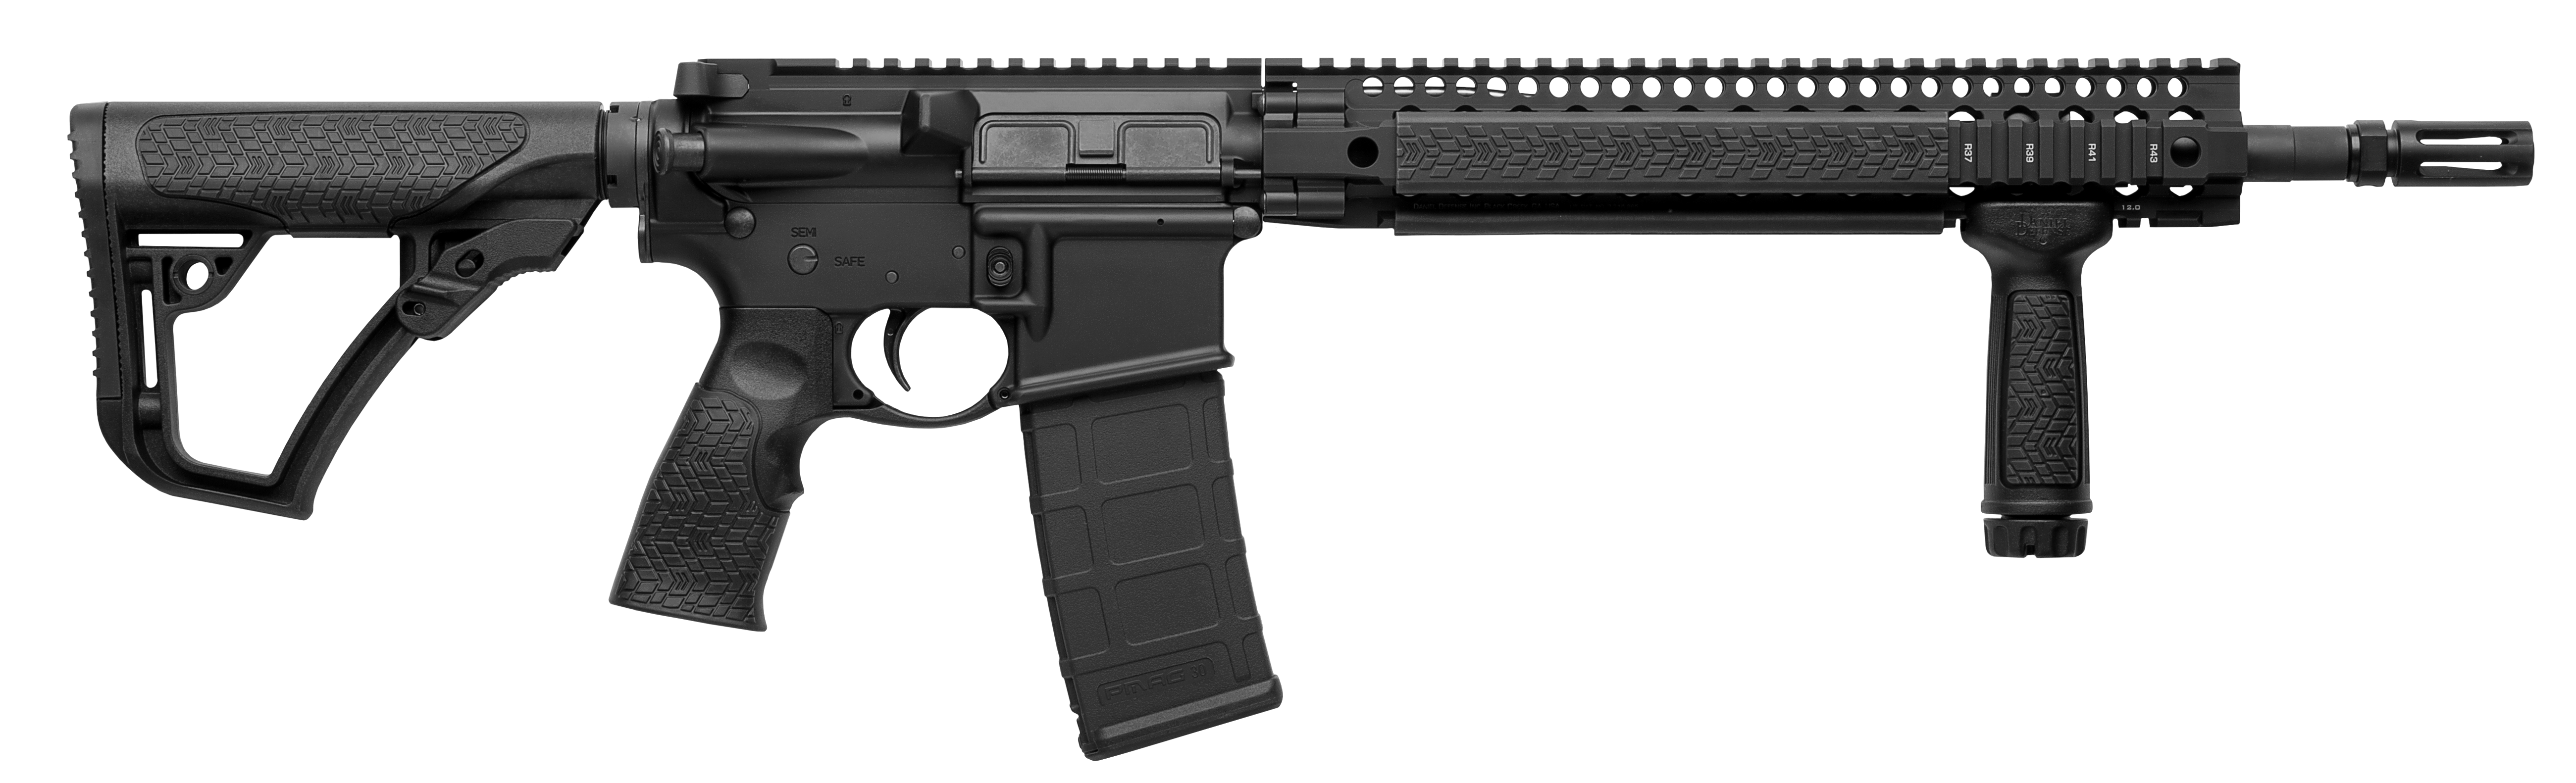 Daniel Defense 02049047 DDM4 V5S Semi-Automatic 223 Remington/5.56 NATO 14.5